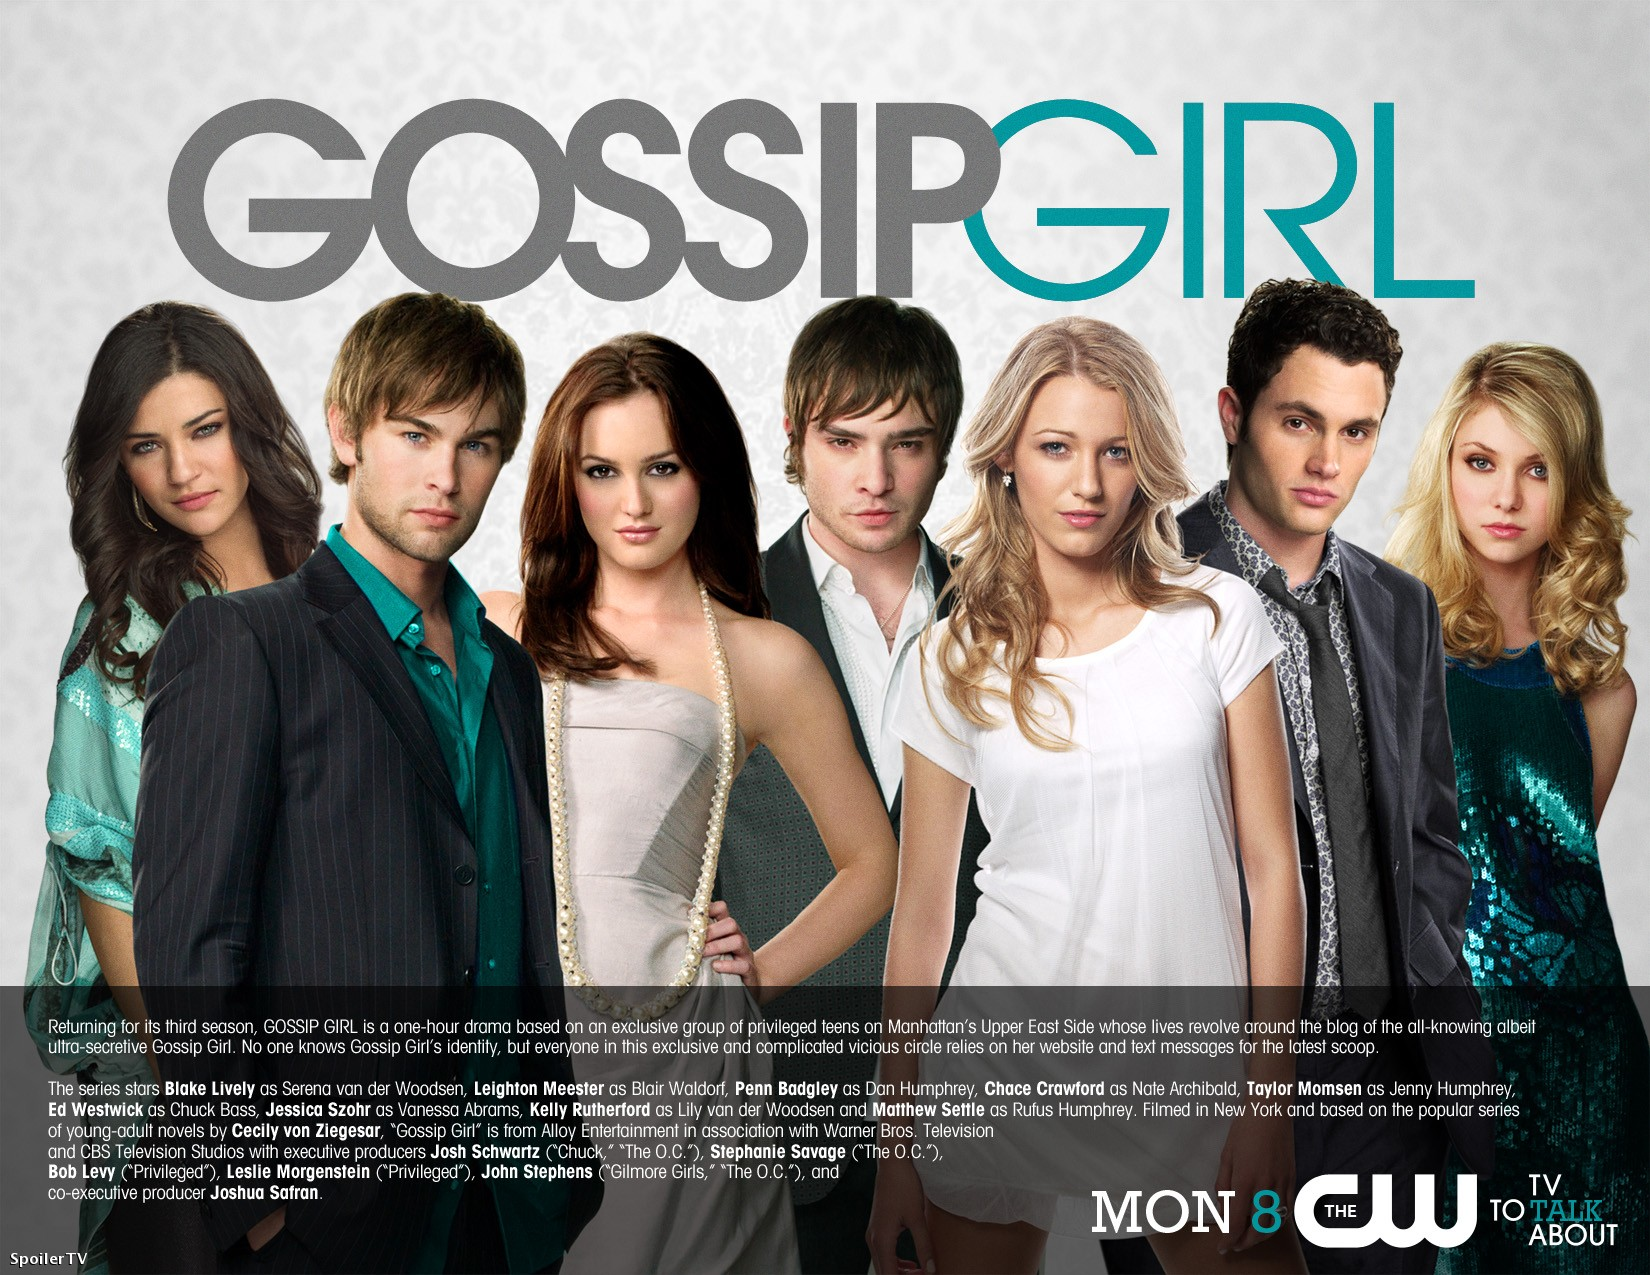 Gossip Girl CW Promo 2009 - YouTube